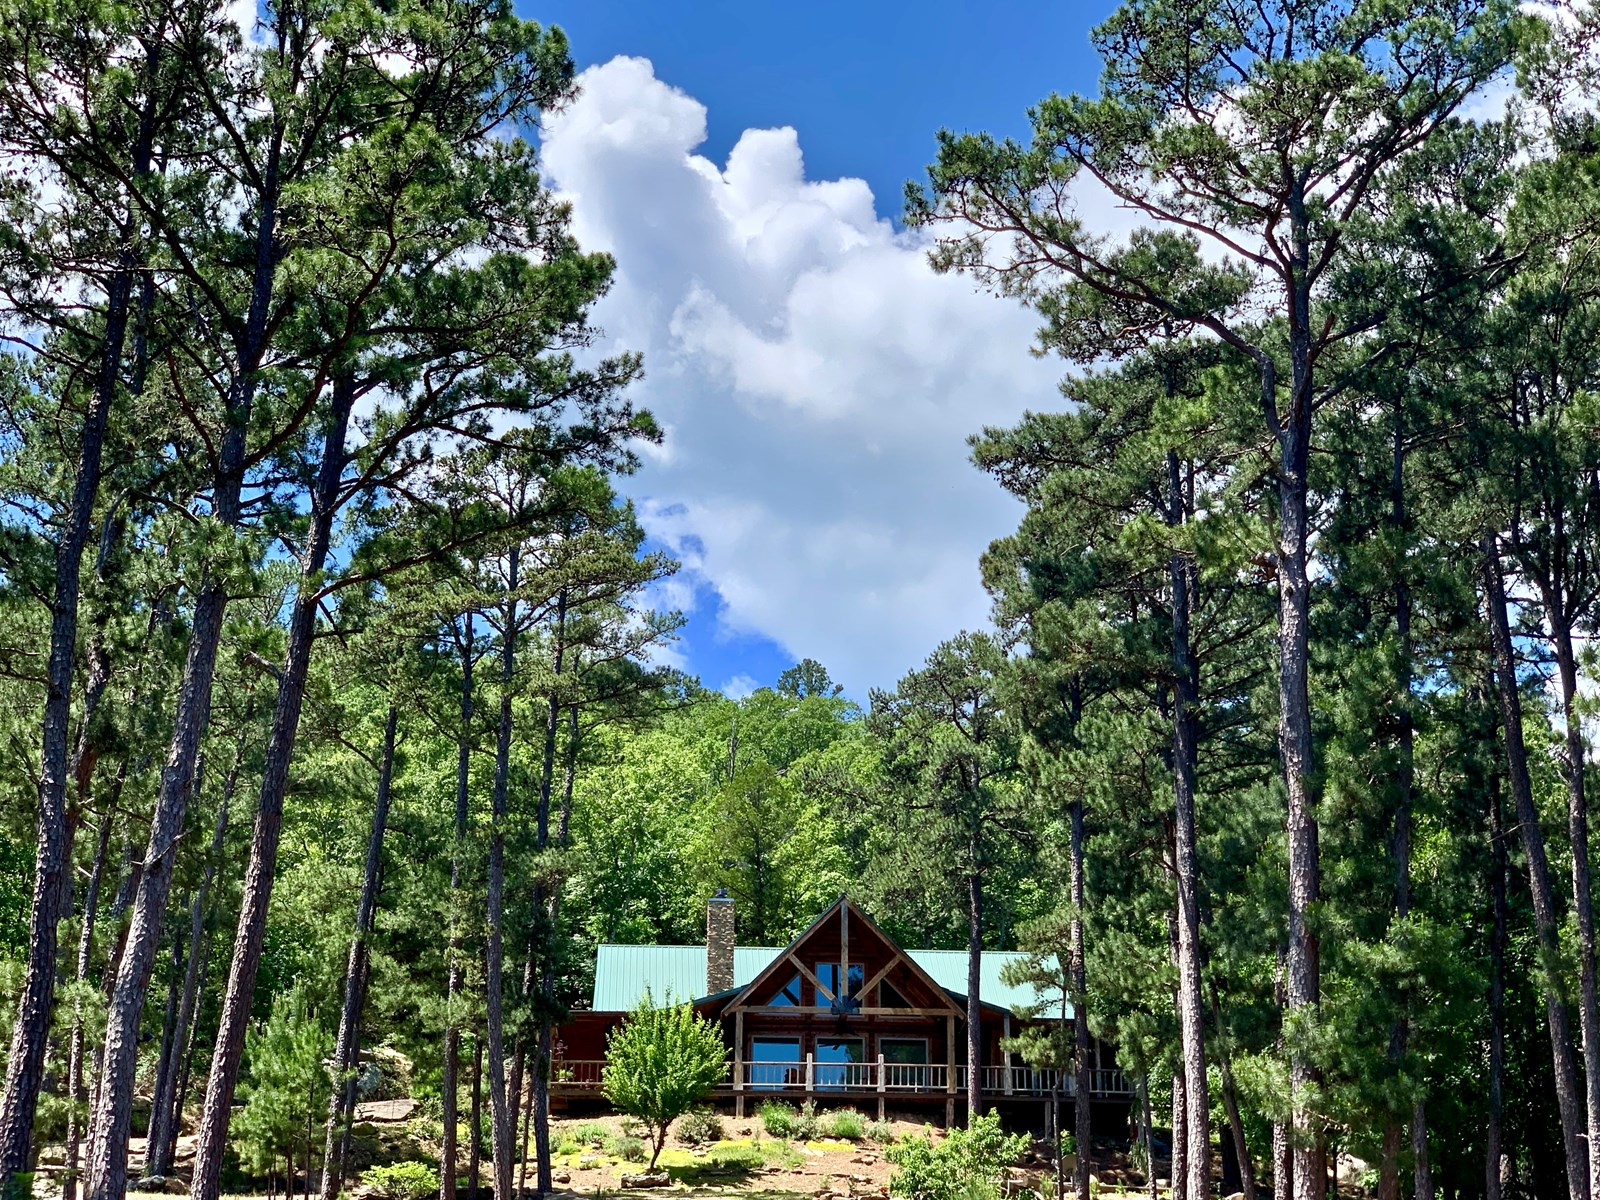 Lakeview Log Home For Sale on Sardis Lake, Clayton Oklahoma